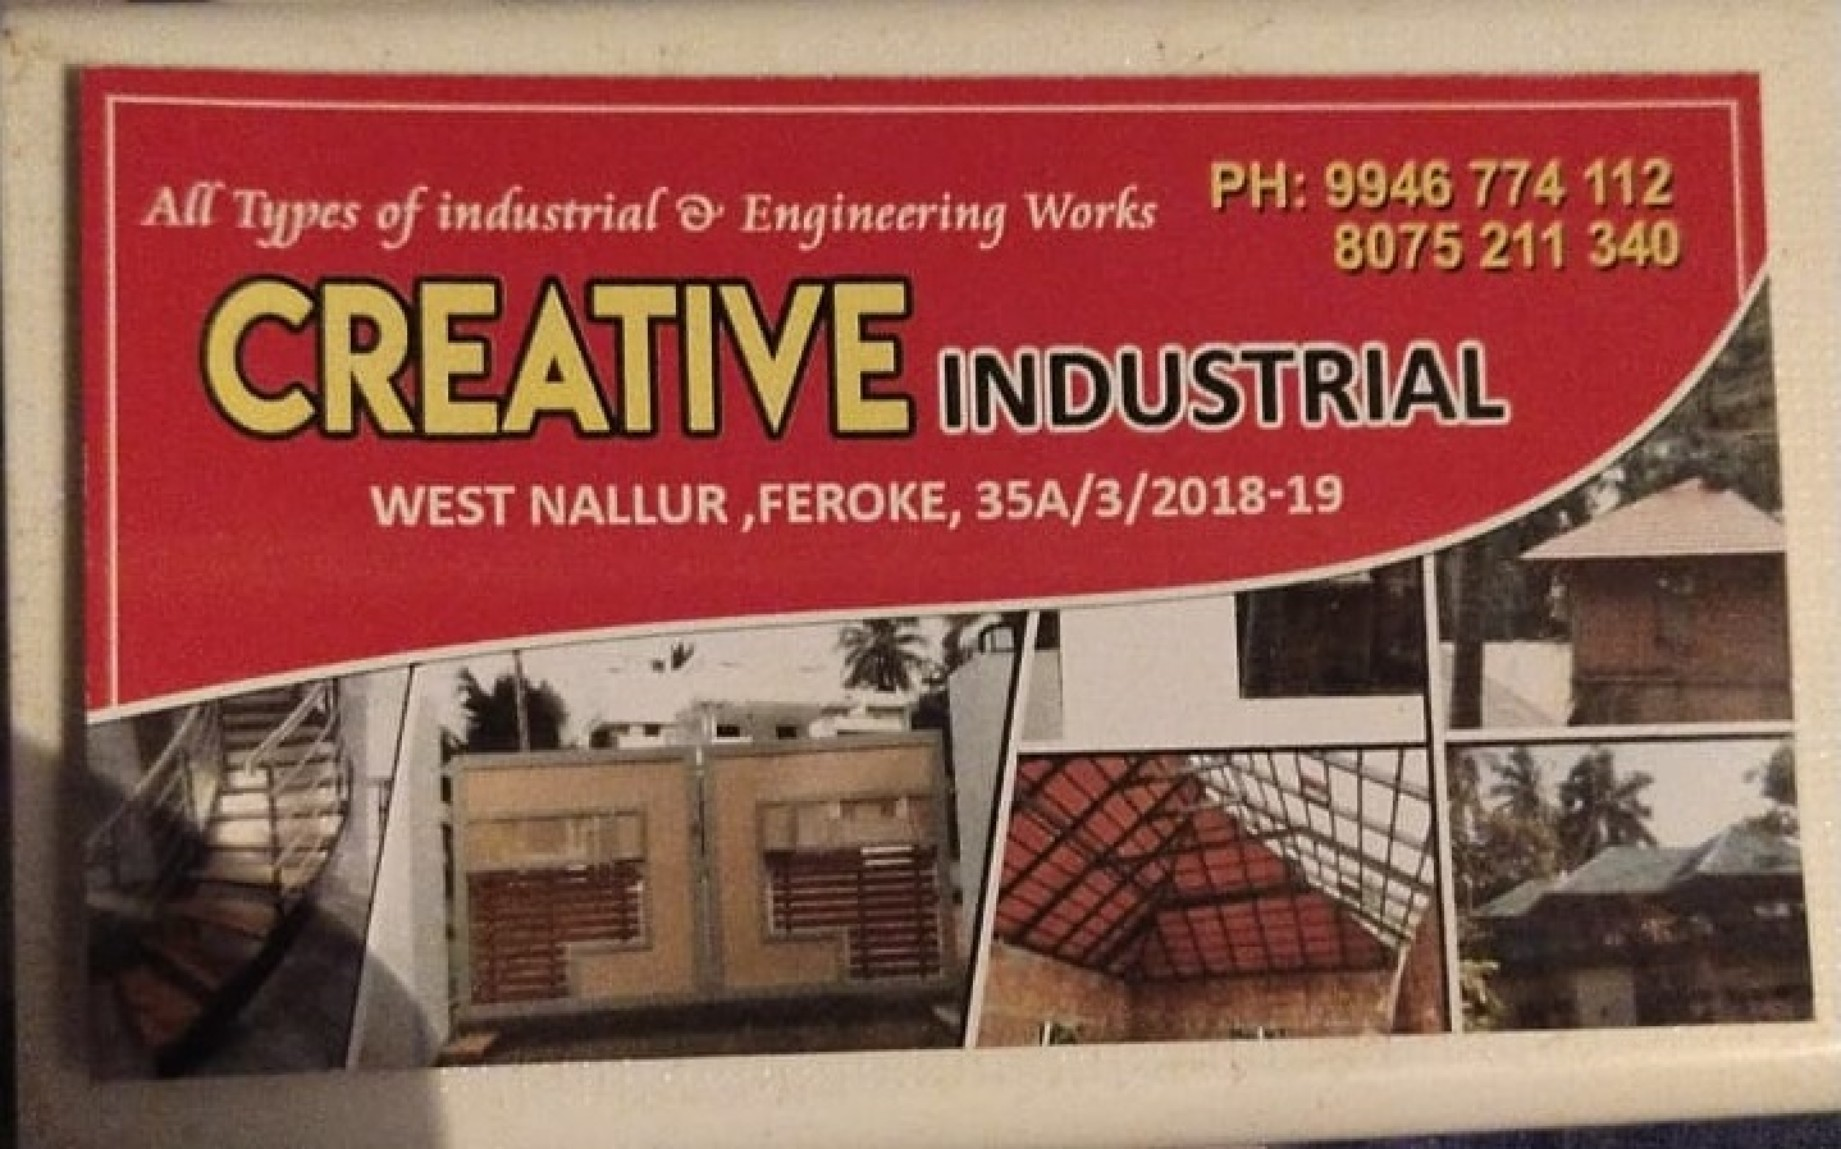 CREATIVE  INDUSTRIAL, METAL FABRICATION,  service in Farook, Kozhikode